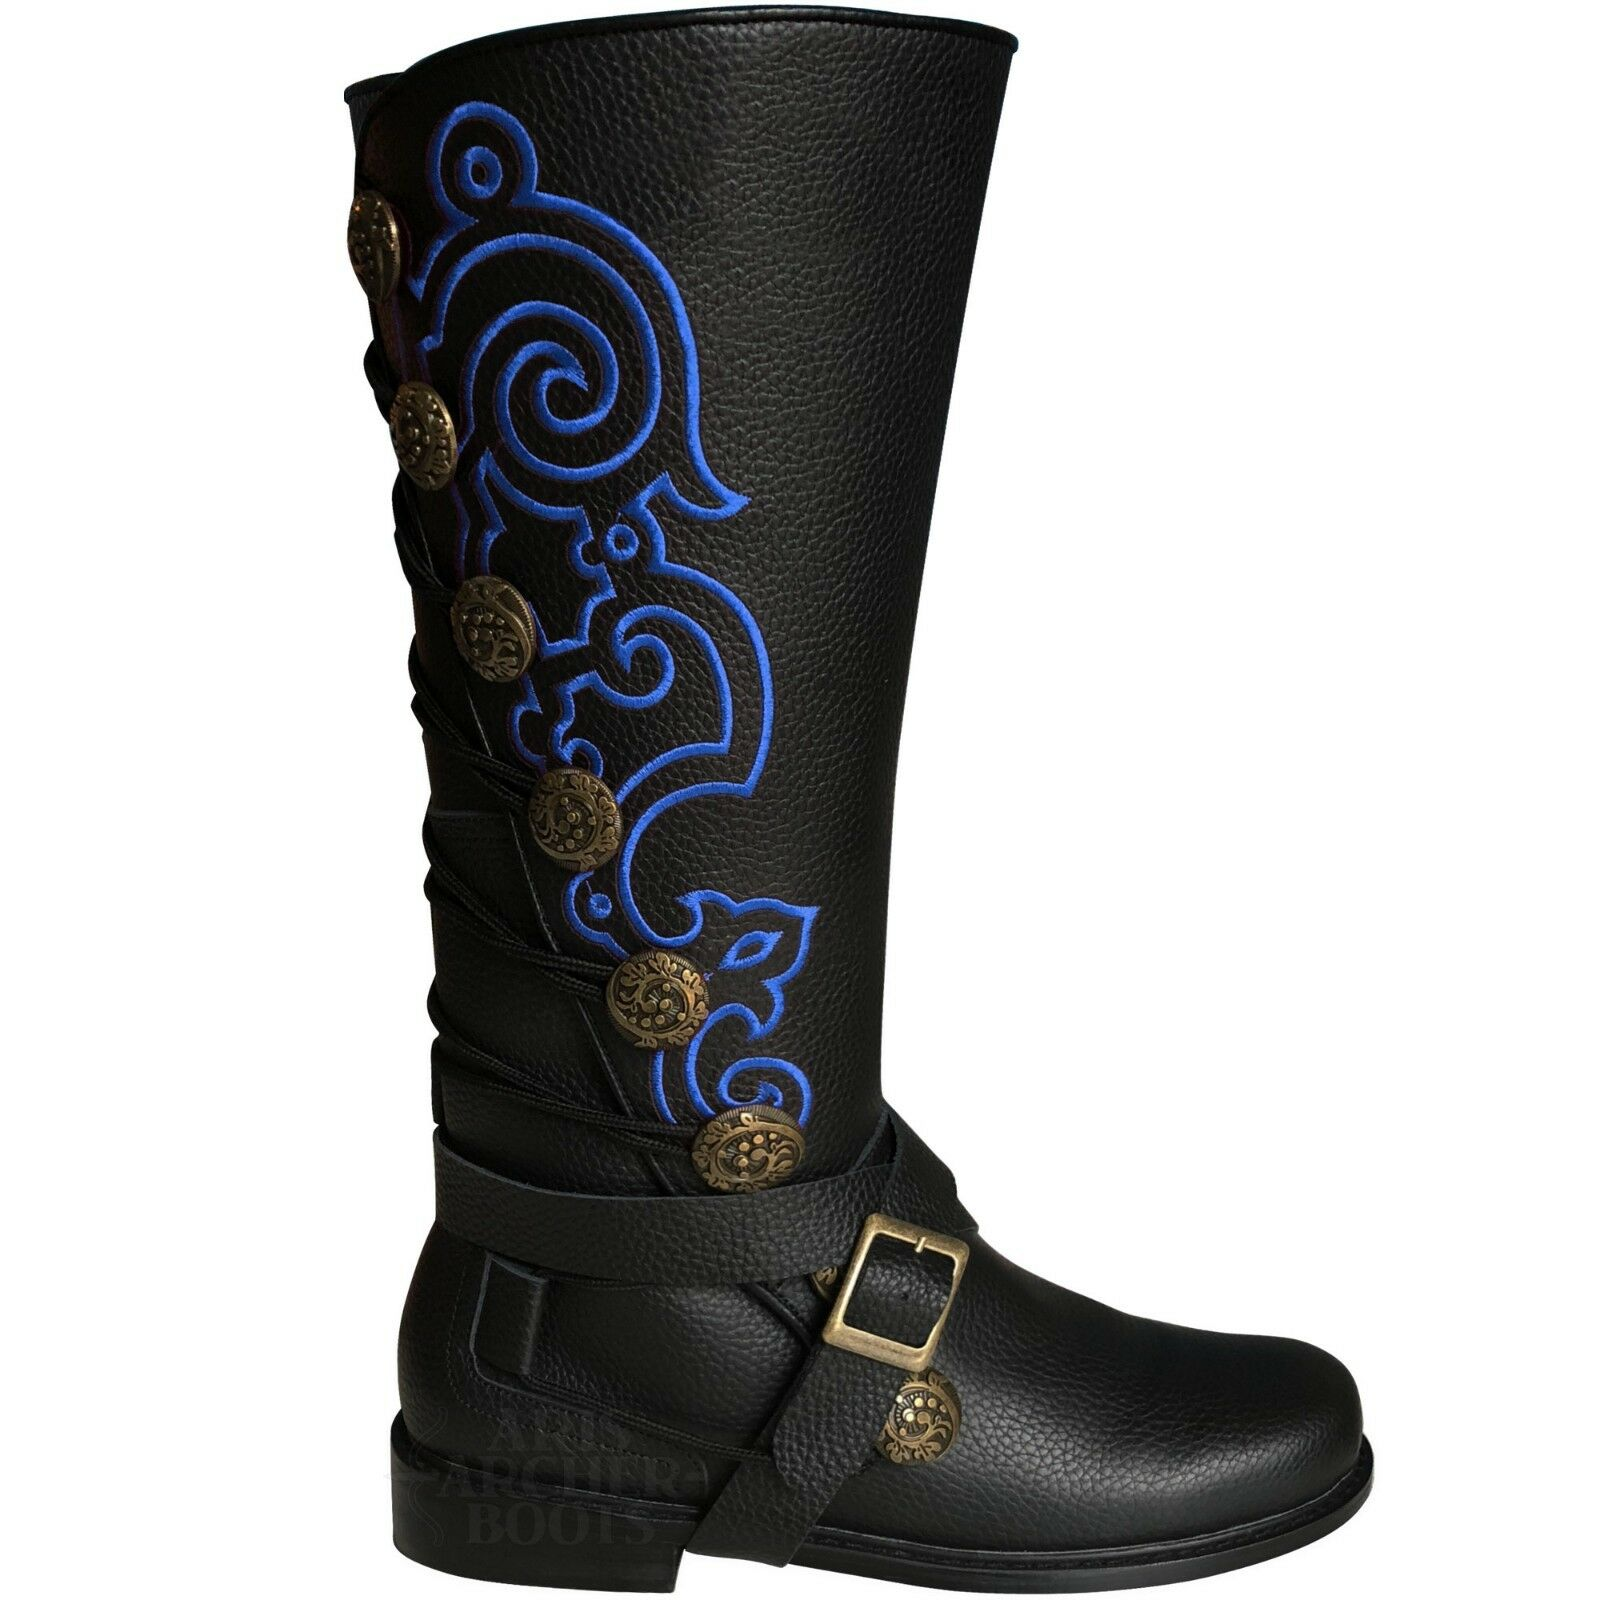 Men's Aris Archer bluee Embroidery Leather Knee Boots -Renaissance Pirate Cosplay